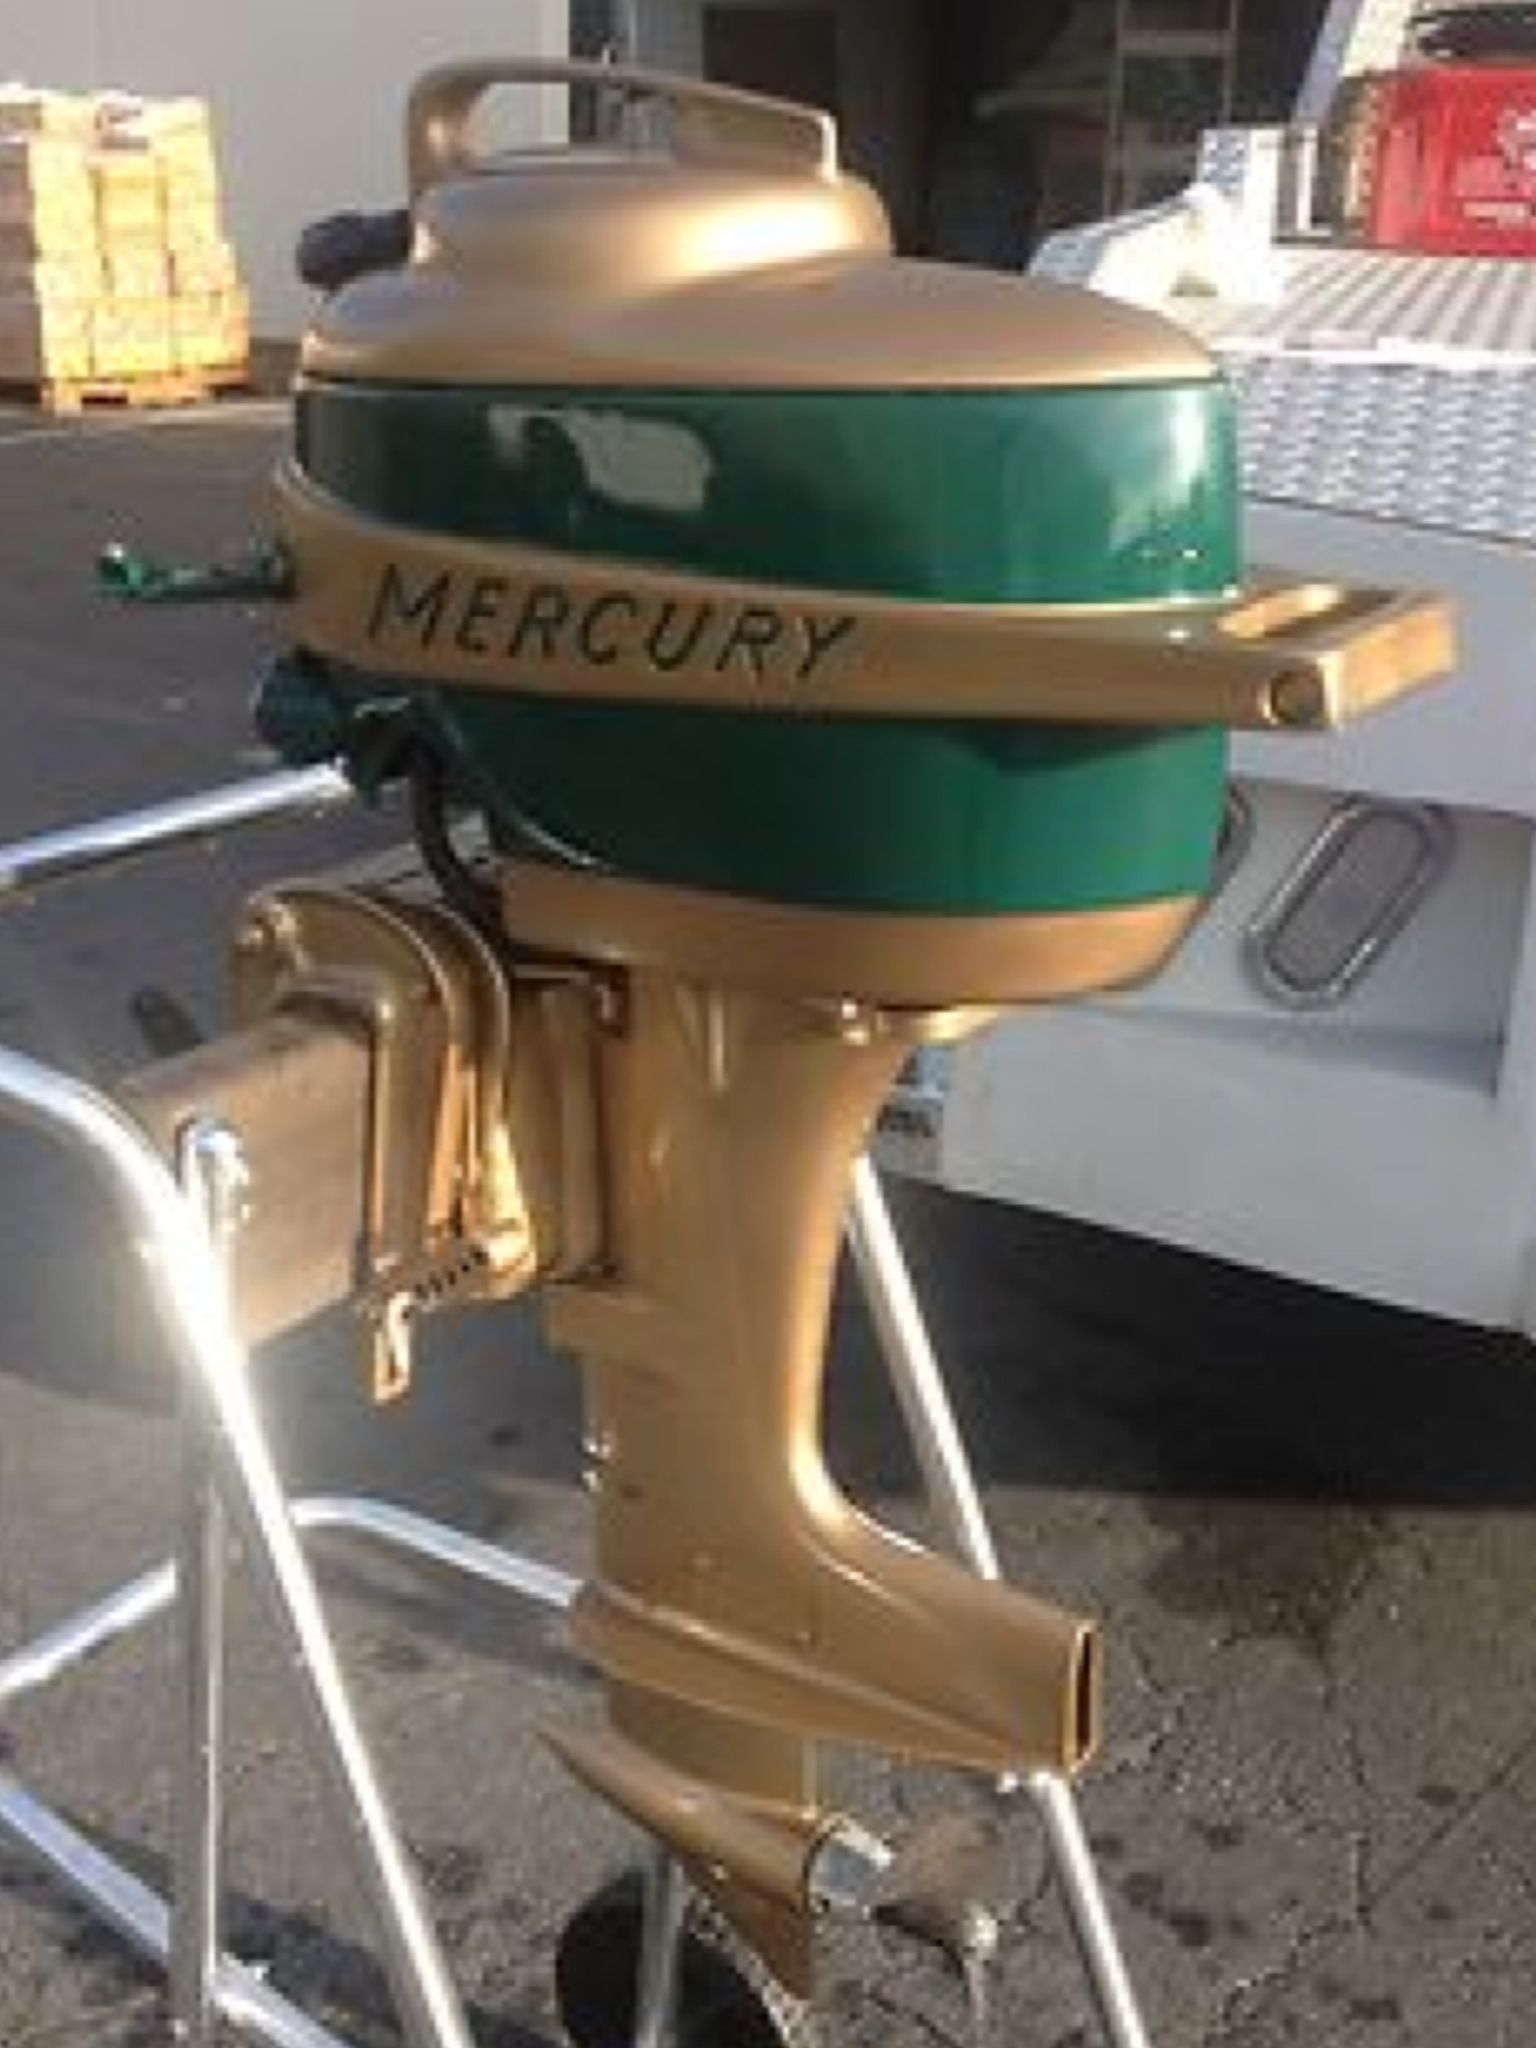 Mercury outboard classic outboard motors pinterest for Vintage mercury outboard motors